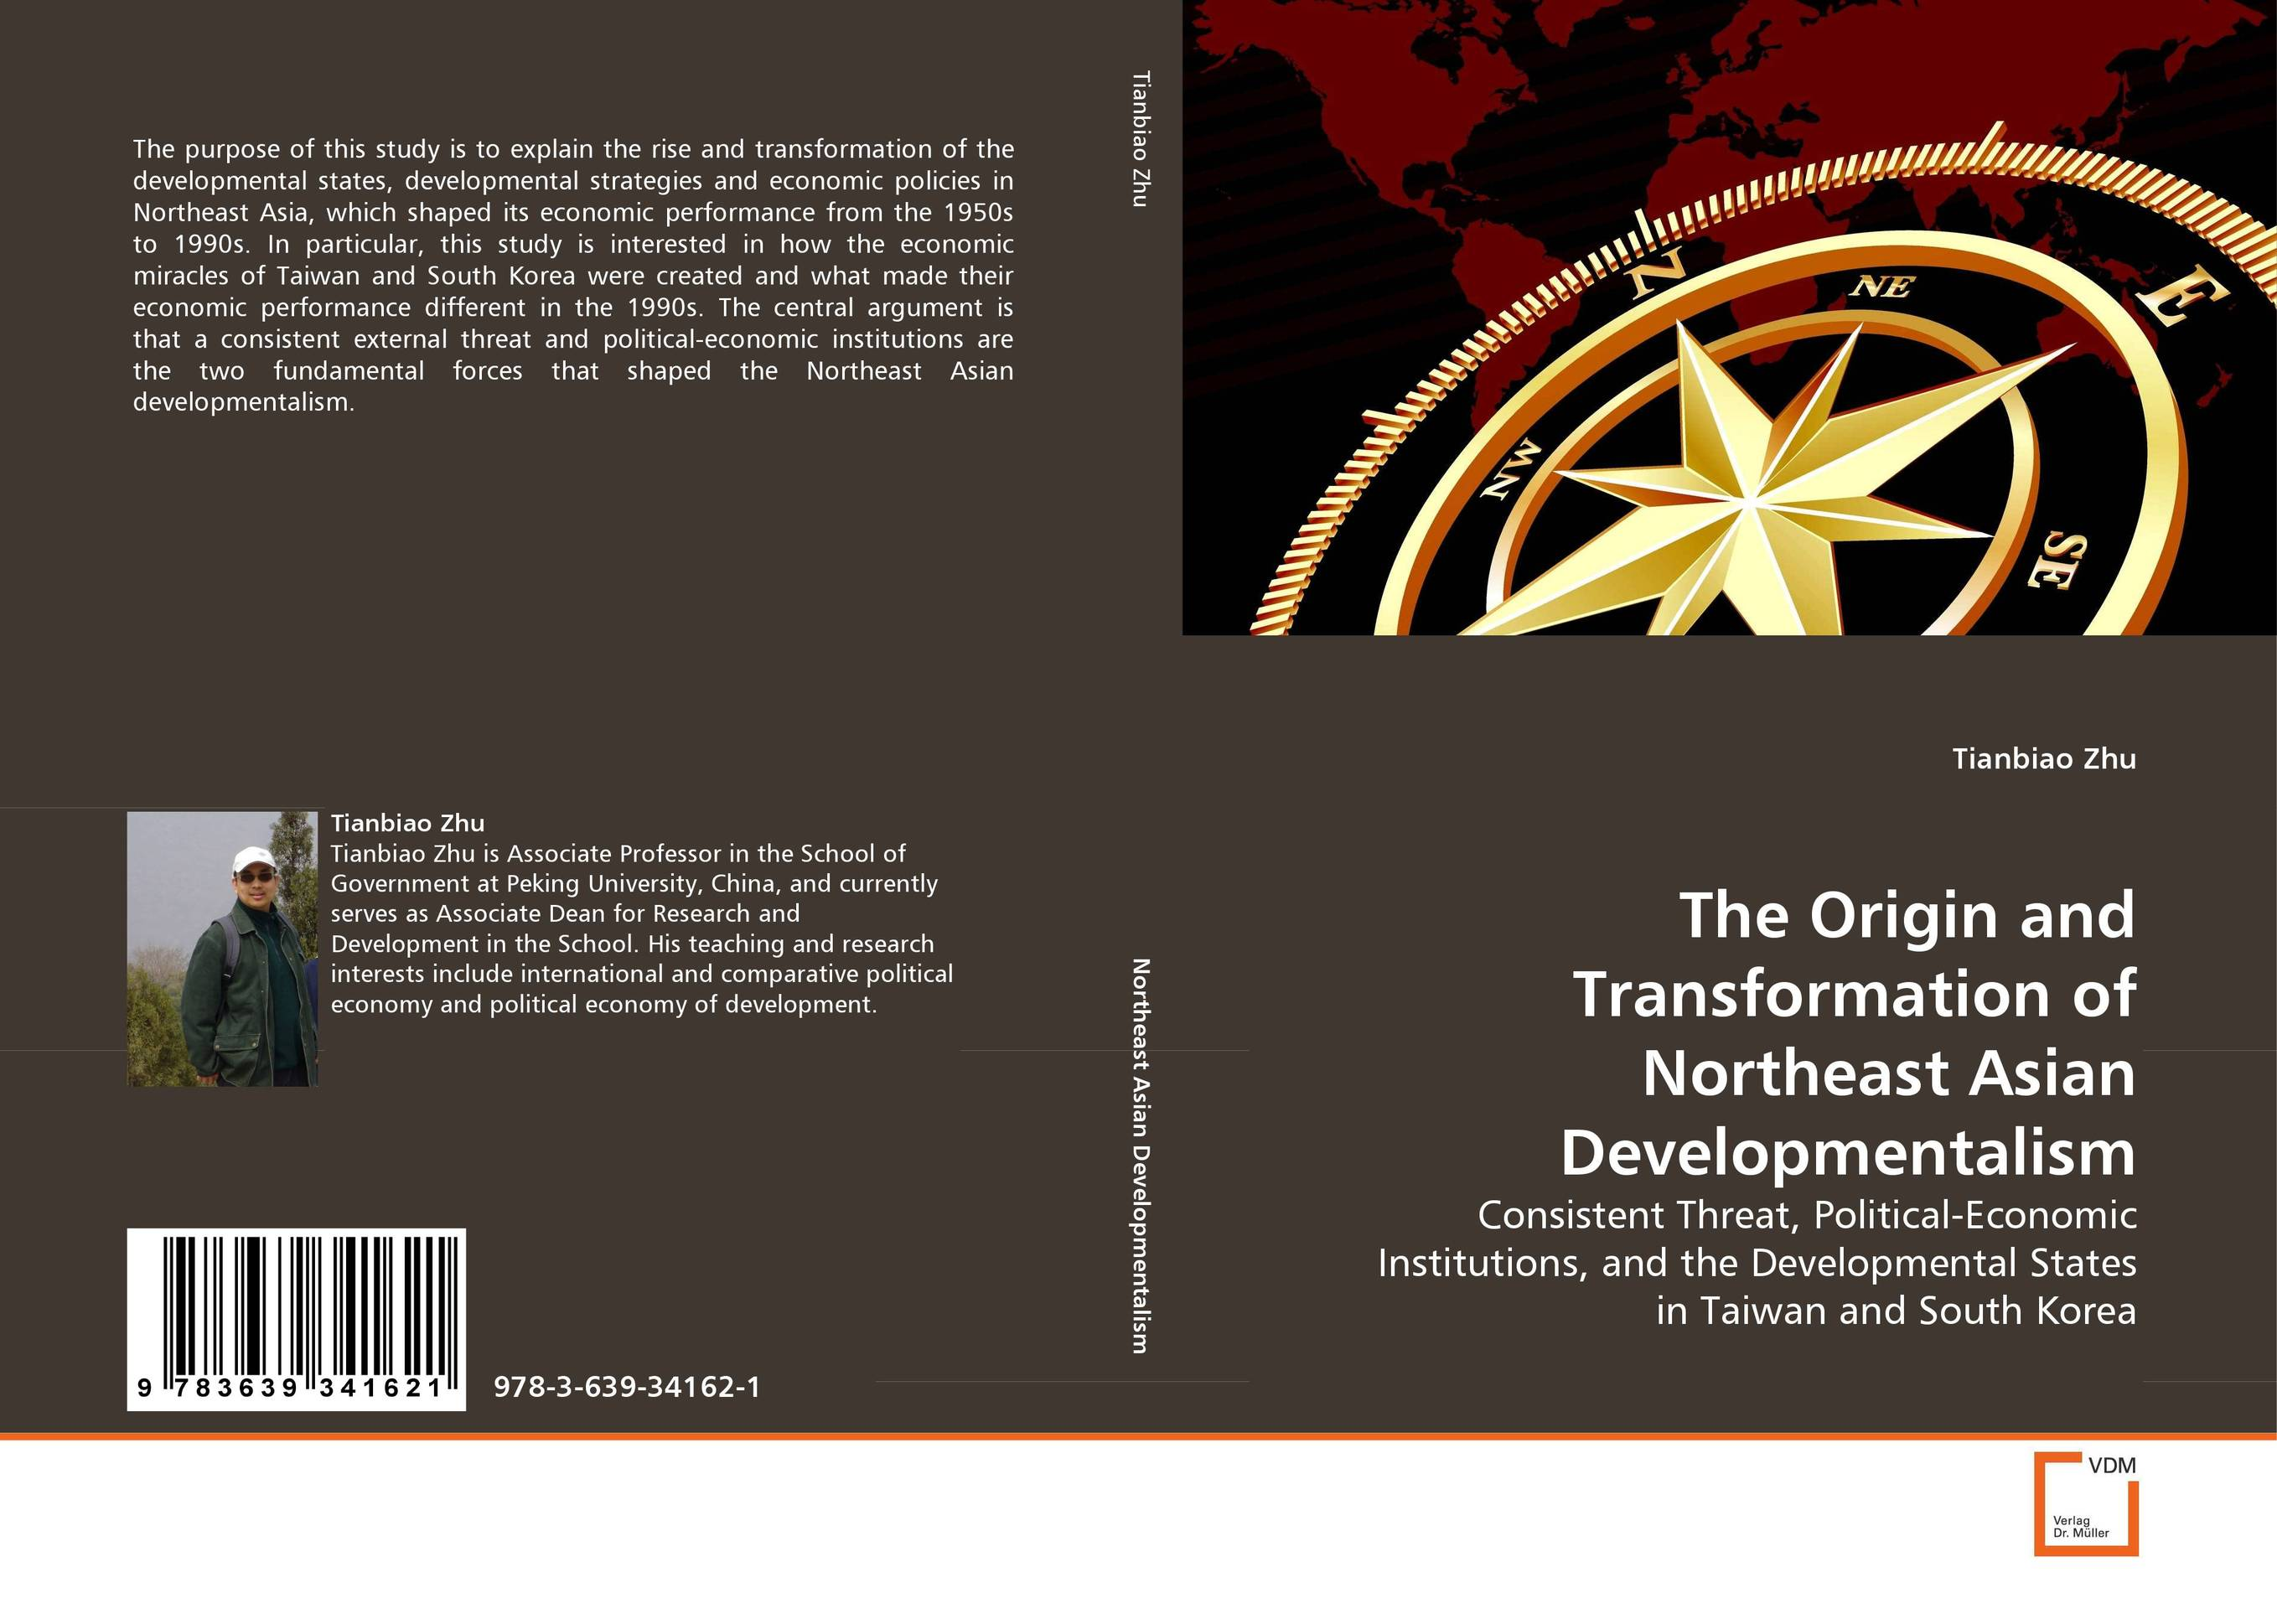 The Origin and Transformation of Northeast Asian Developmentalism developmental state and economic transformation the case of ethiopia